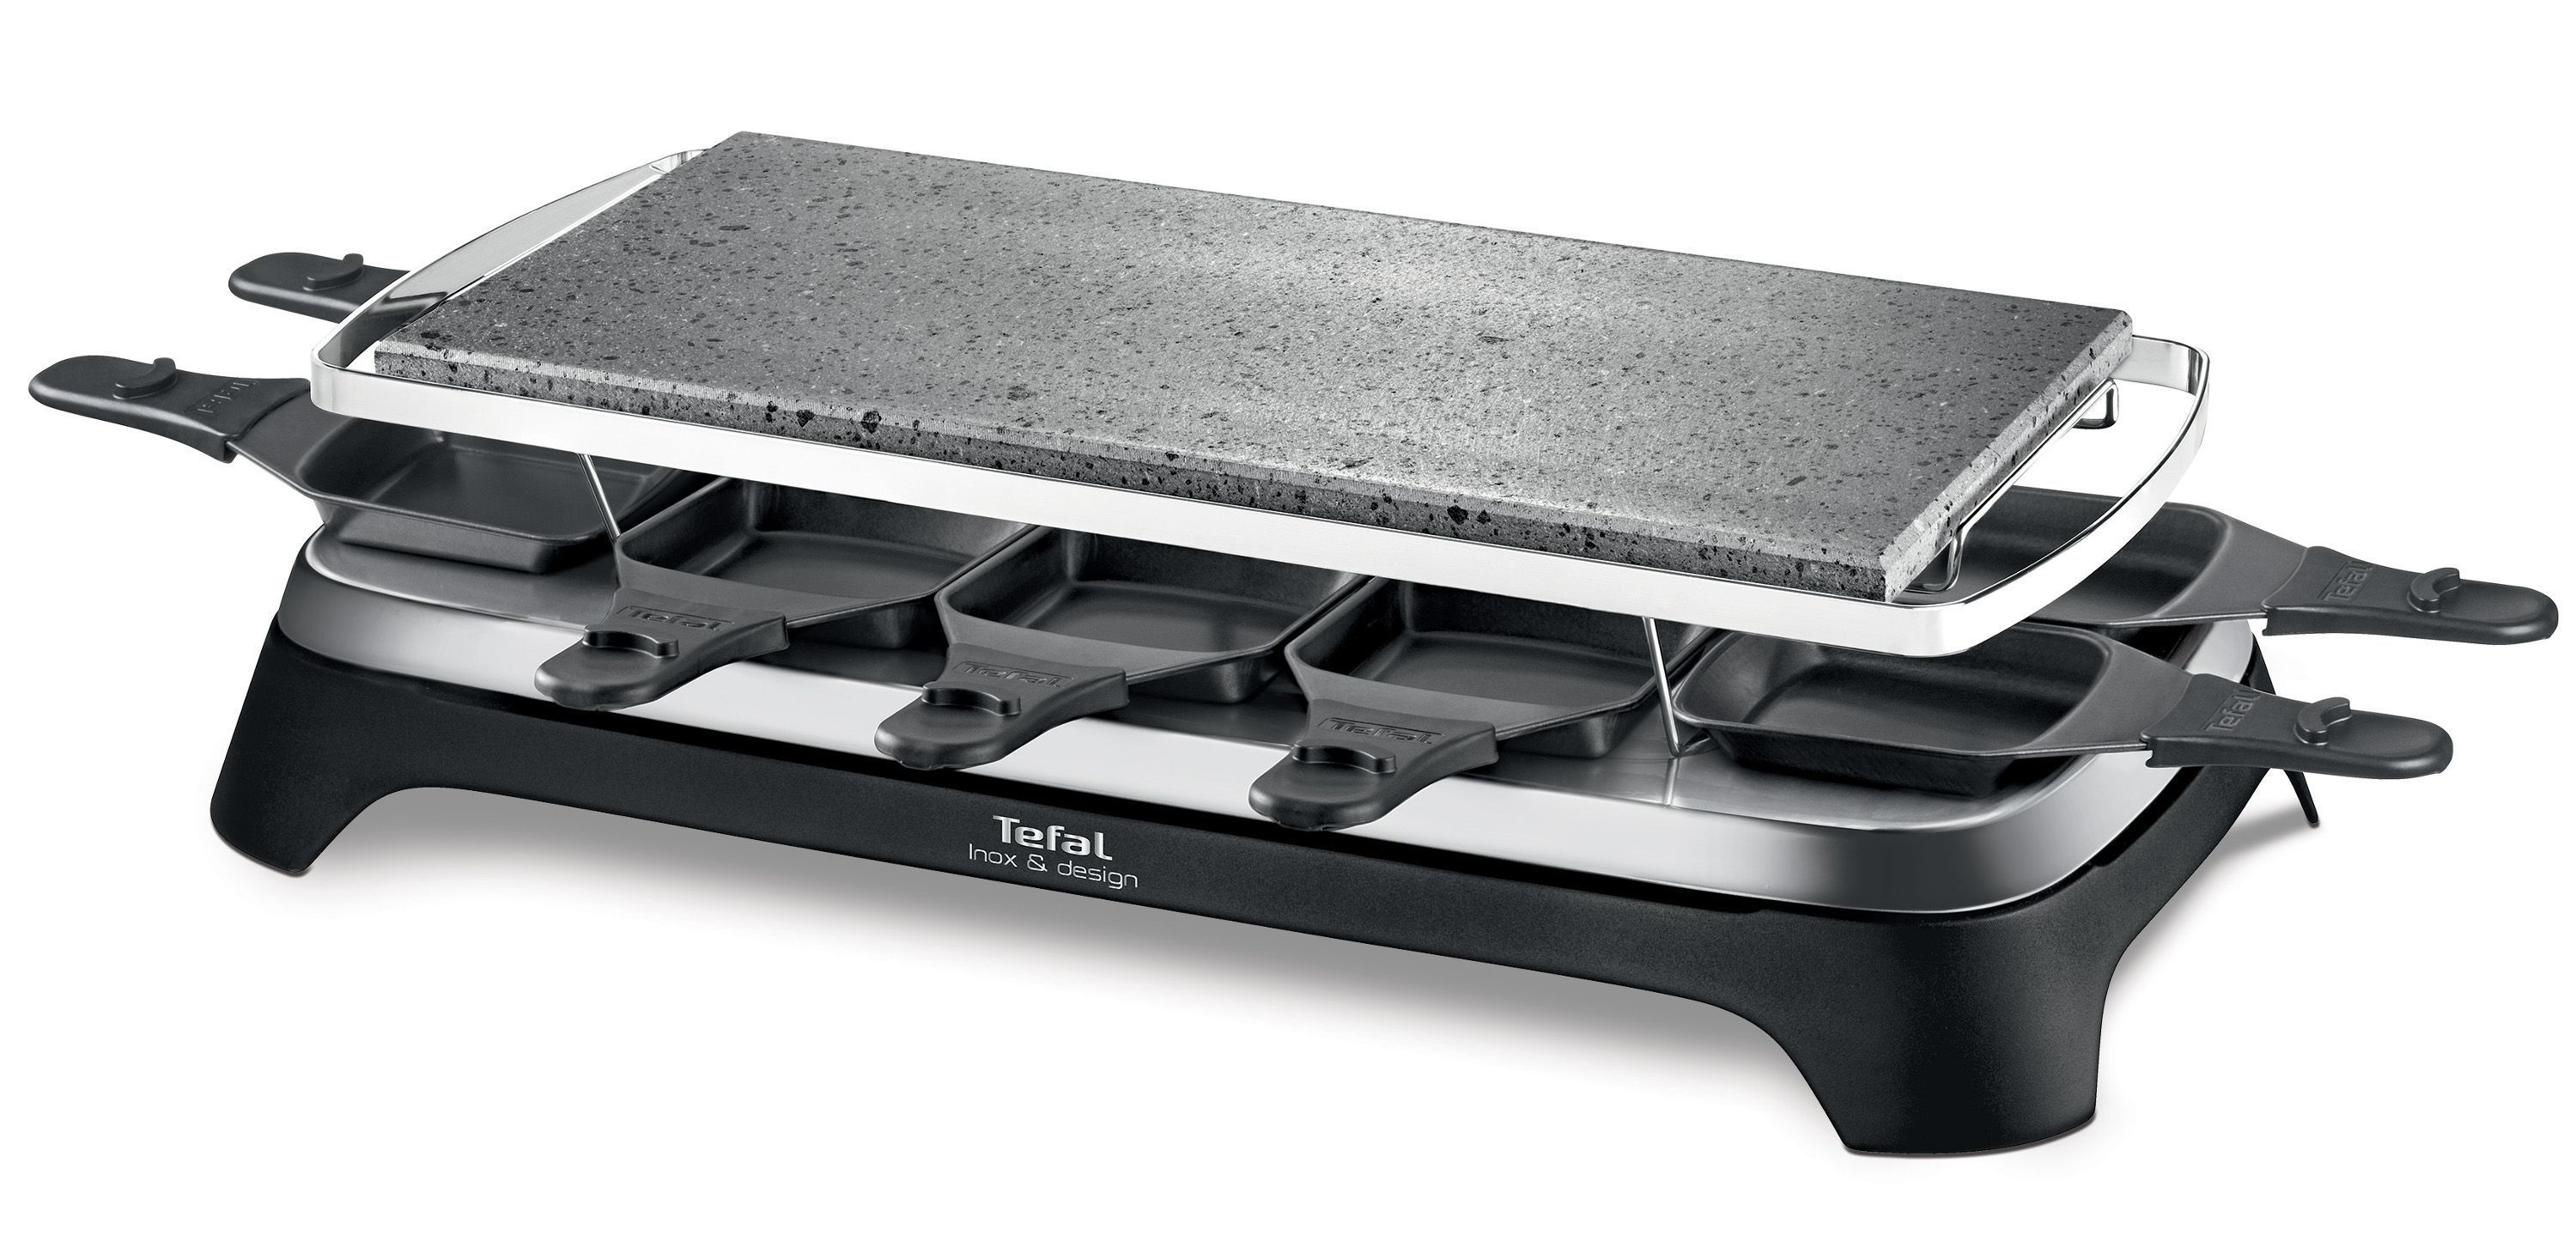 Tefal pierrade raclette inox design pr457812 for Appareil a cuire